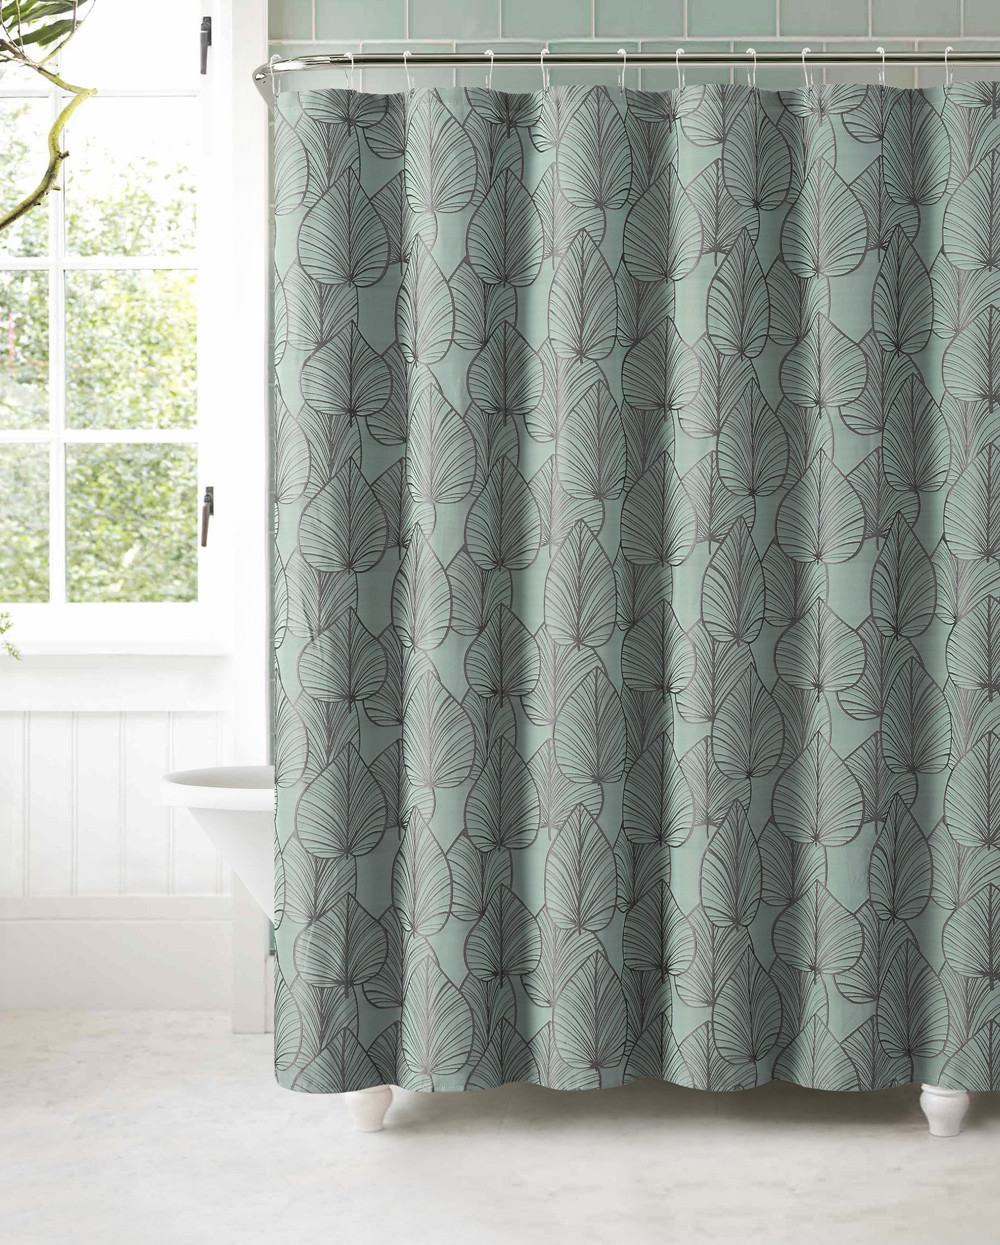 Slate Blue Jacquard Fabric Shower Curtain Gray Textured Leaf Design